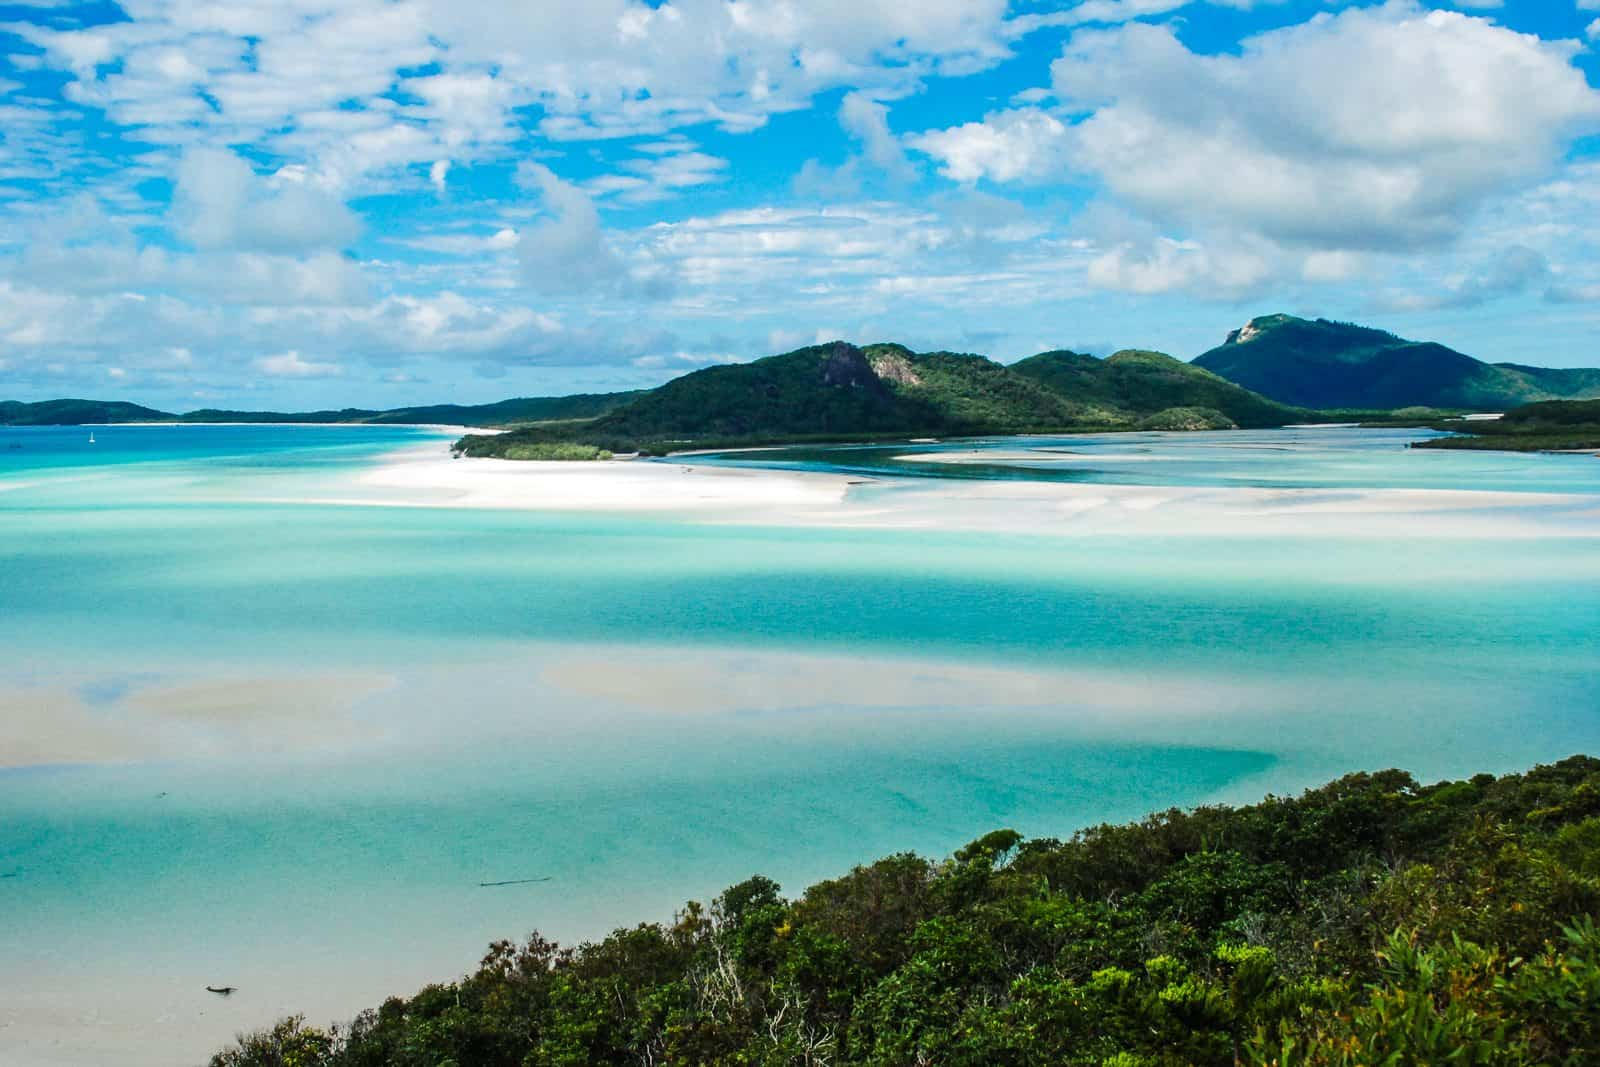 Whitehaven Beach, Whitsunday Islands.